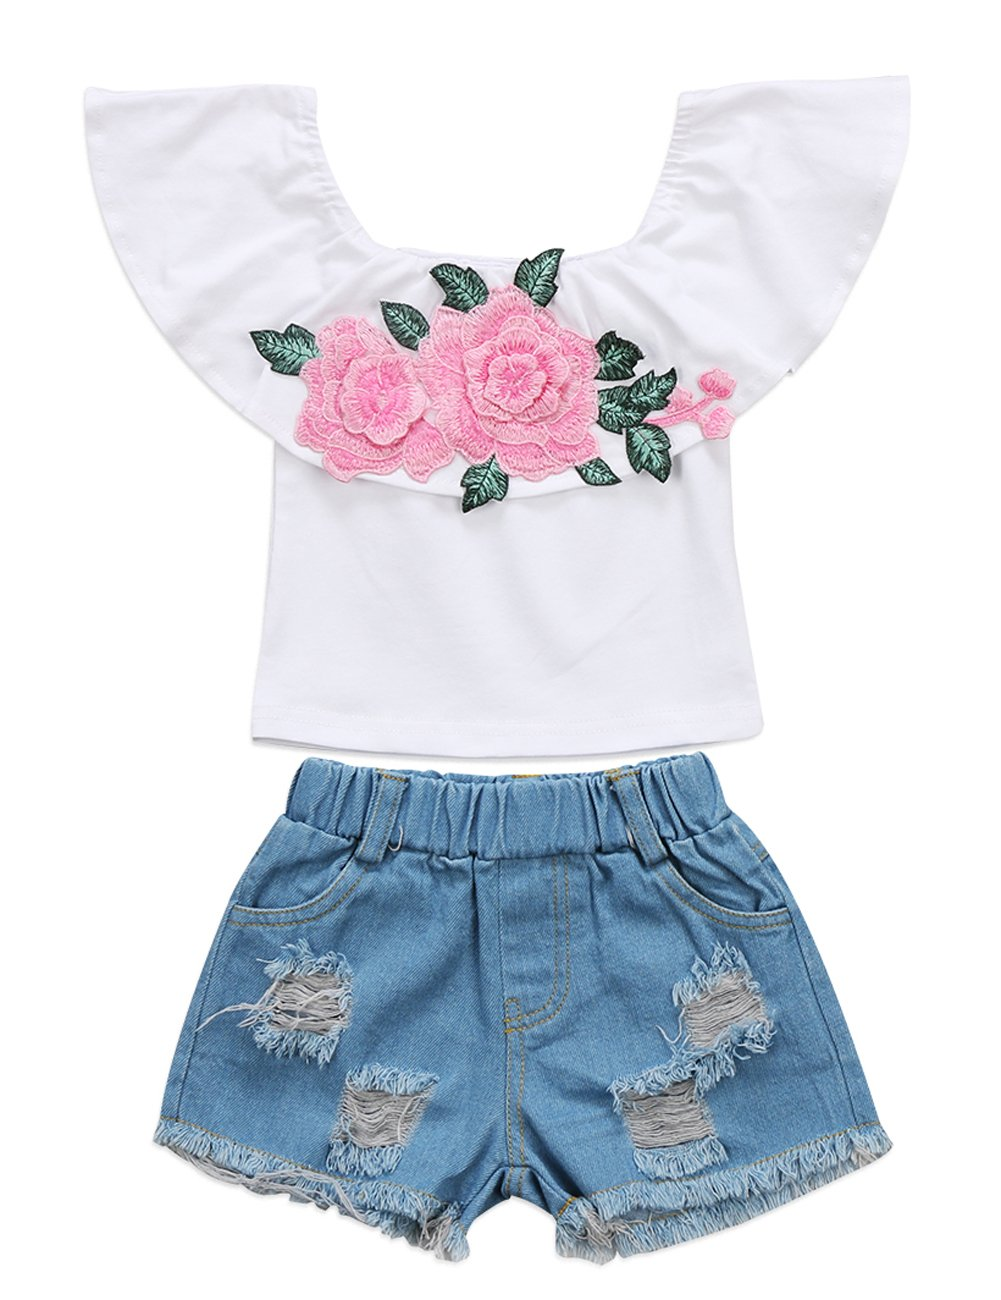 Little Girls Off-Shoulder Rose Embrodidery Applique Ruffle Top and Denim Shorts Outfit (4-5T, Pink)